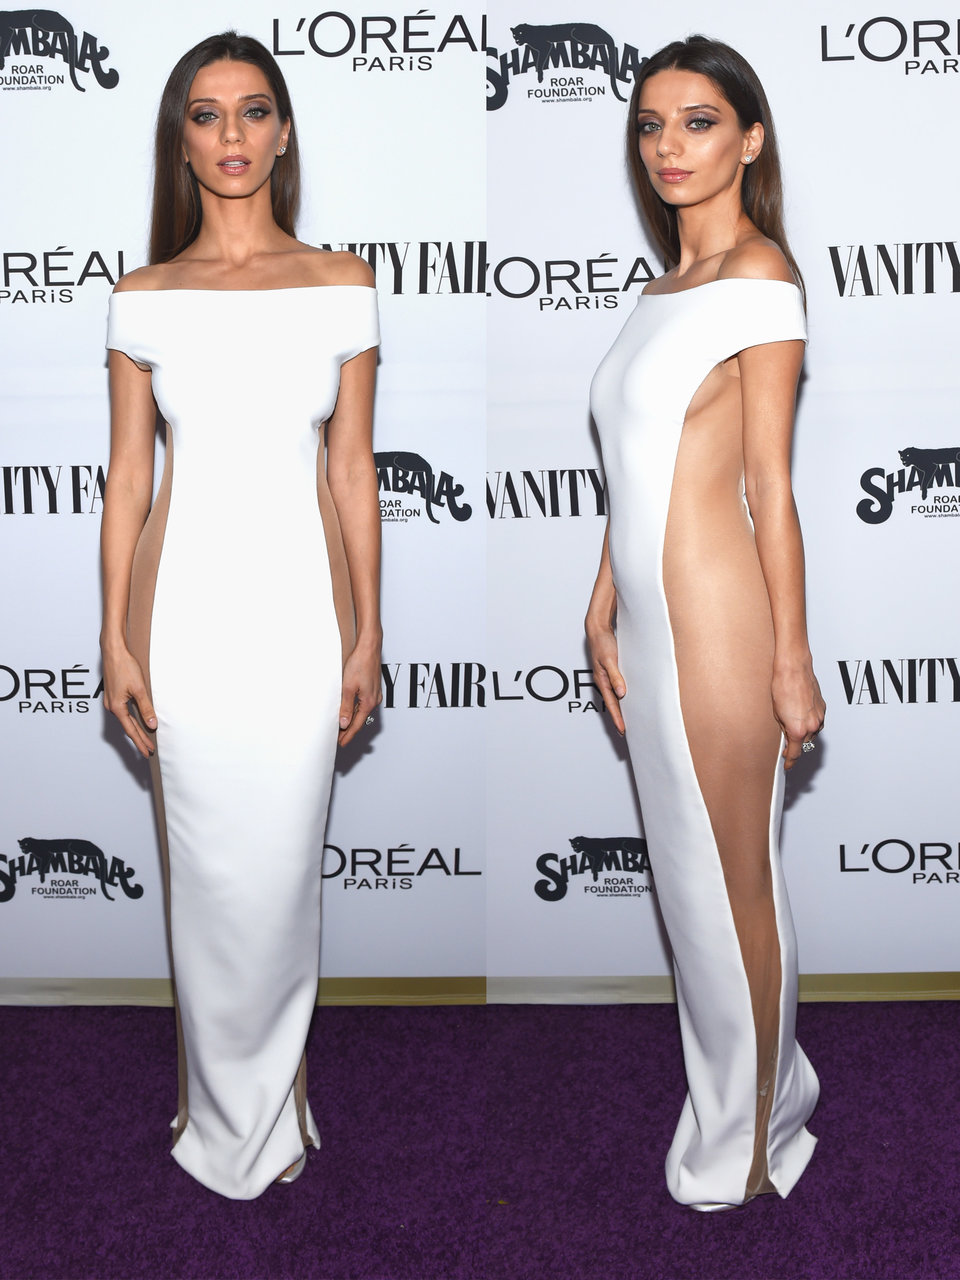 the most recent celeb to tackle the sheer sided gown was westworld star angela sarafyan